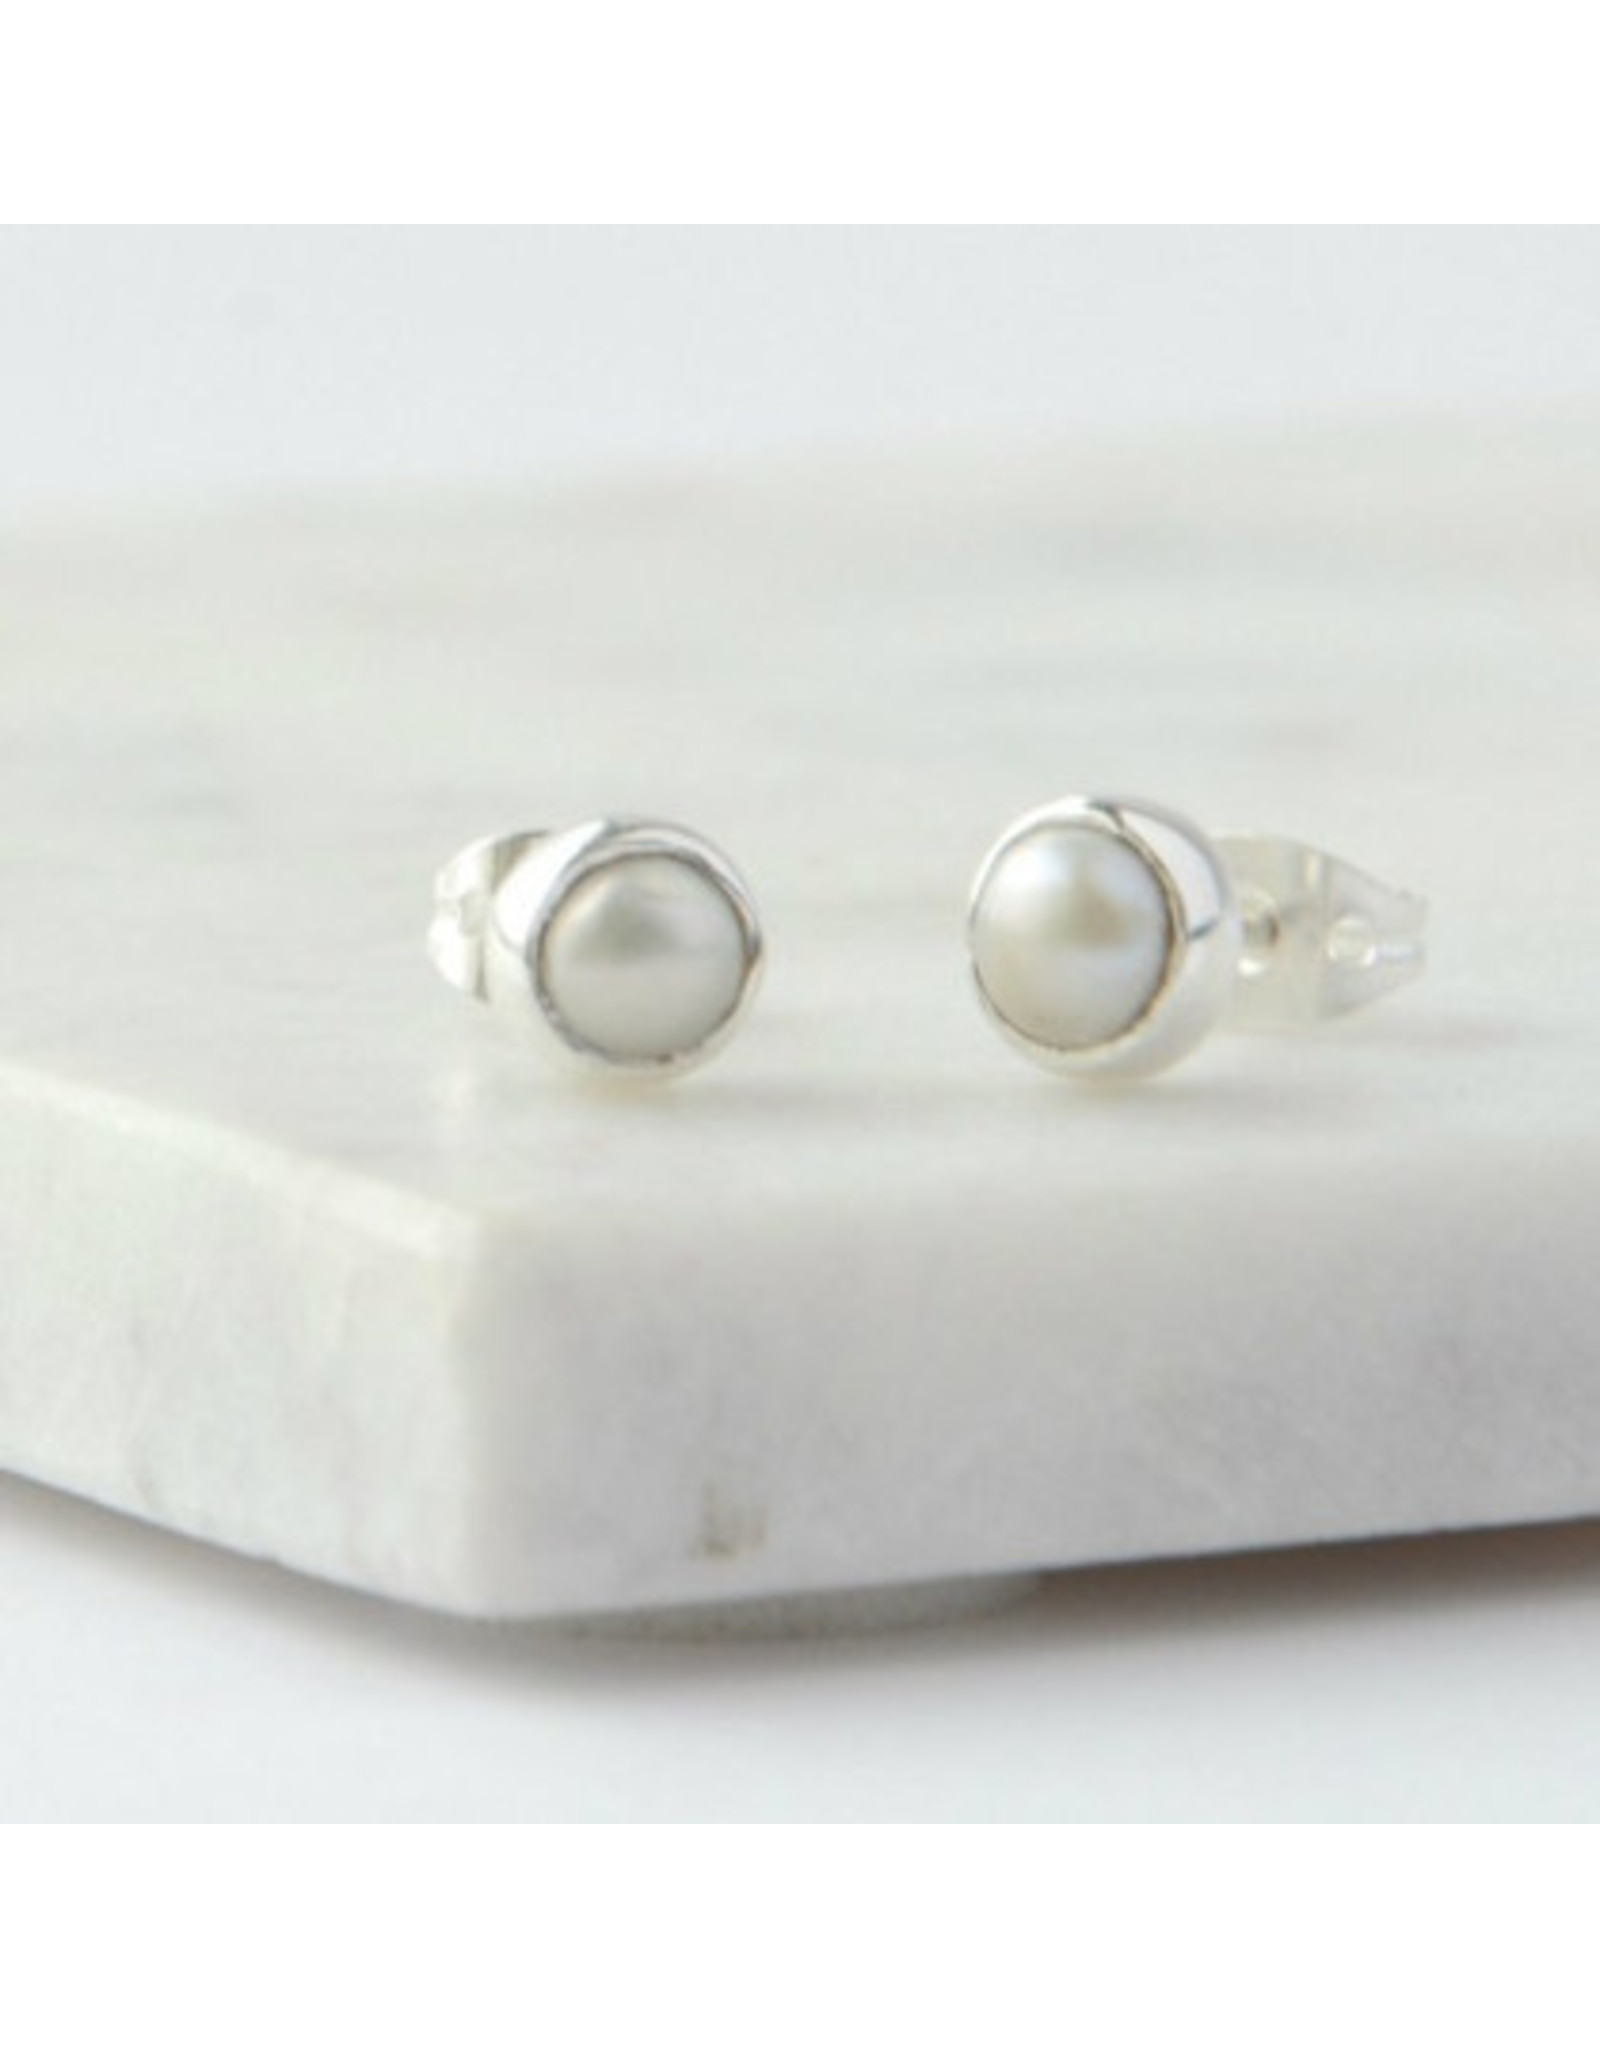 Ethereal Pearl Studs, India